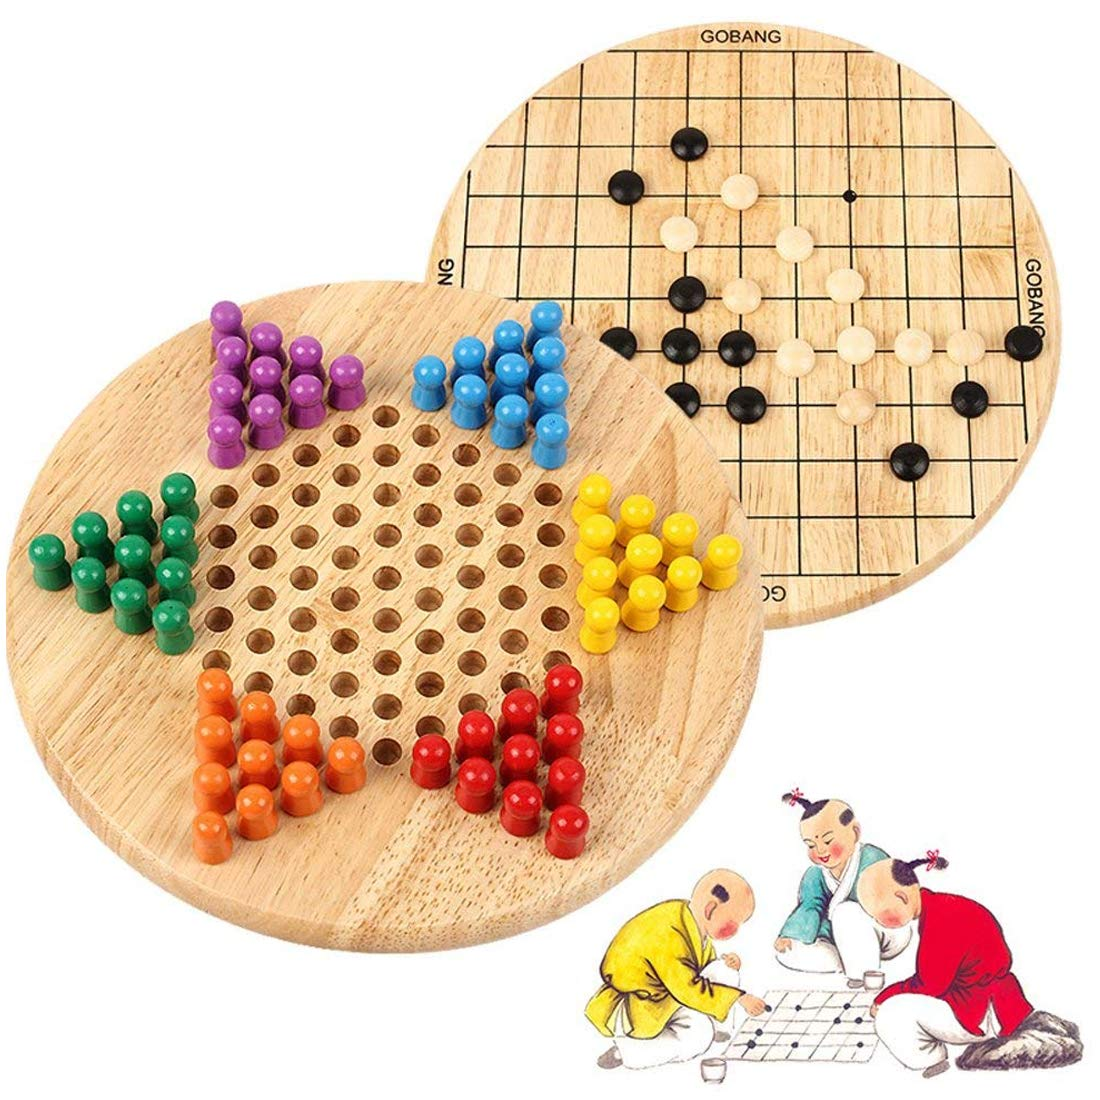 Wondertoys 2 in 1 Chinese Checkers & Gobang (Five in a Row) Wooden Board Game for Family